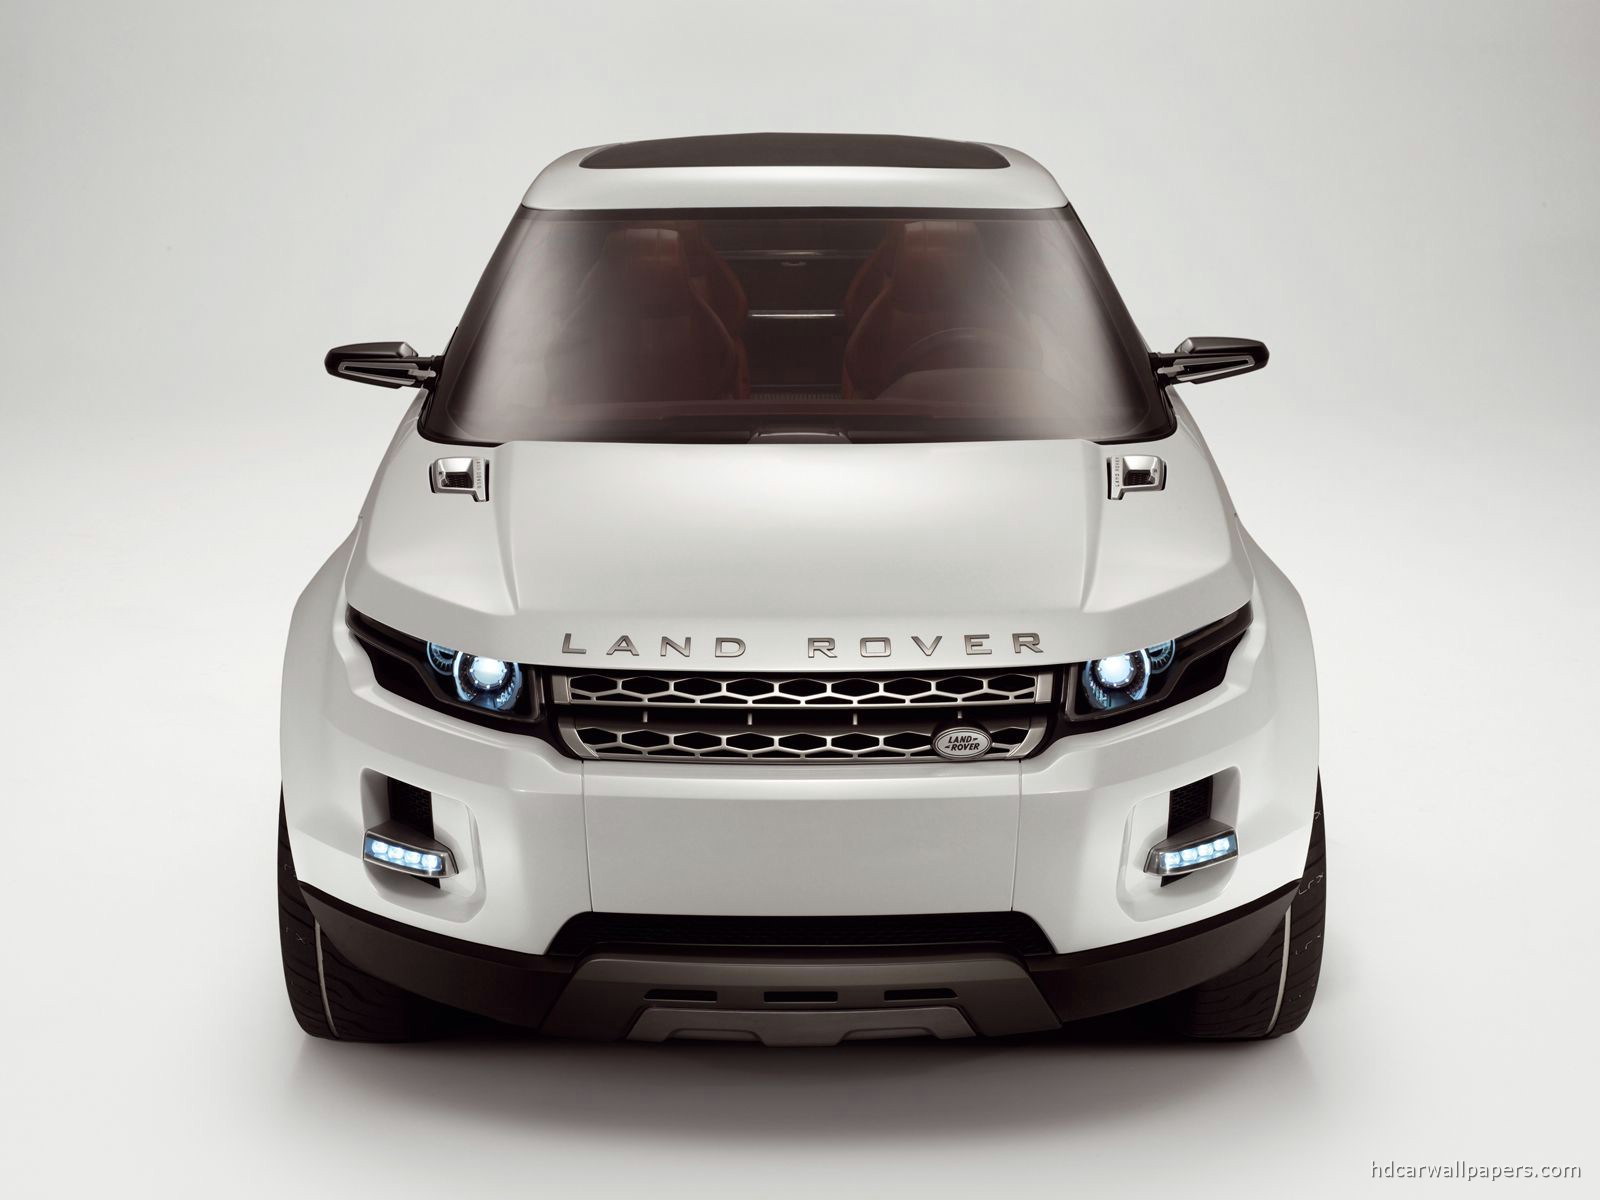 Land Rover LRX Concept normal Free Picture Download Image Of